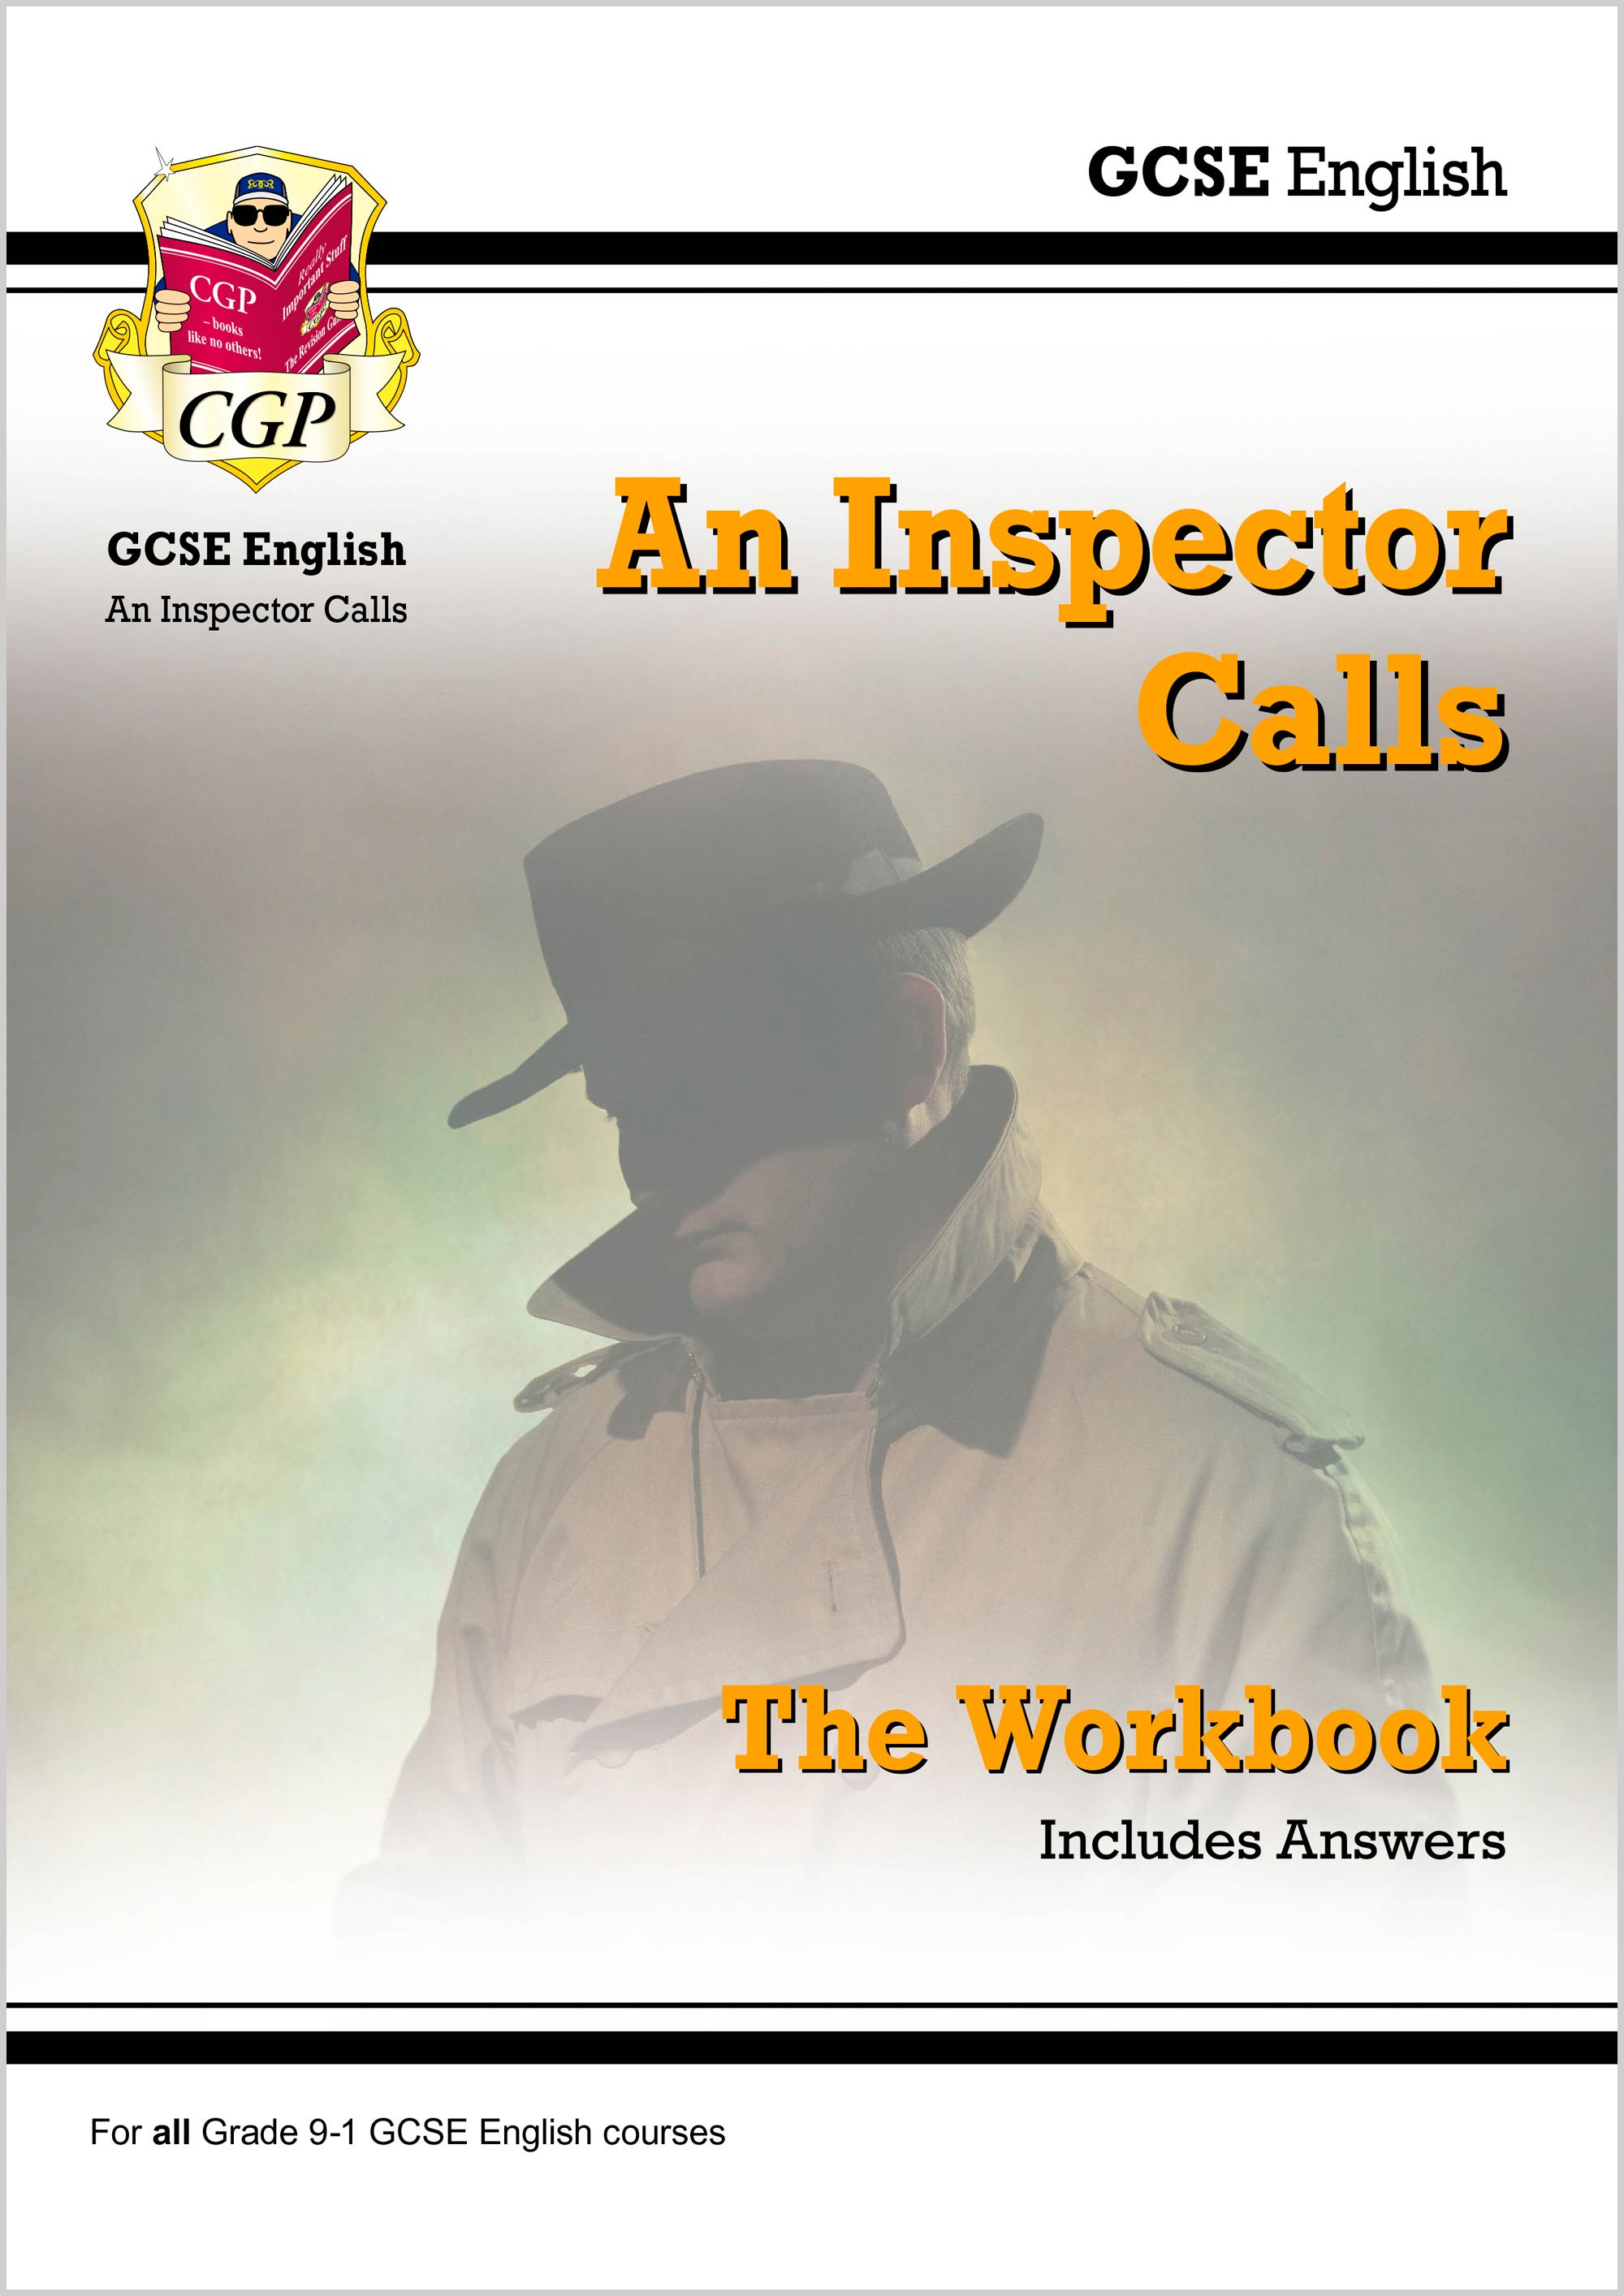 ETWI41DK - New Grade 9-1 GCSE English - An Inspector Calls Workbook (includes Answers)